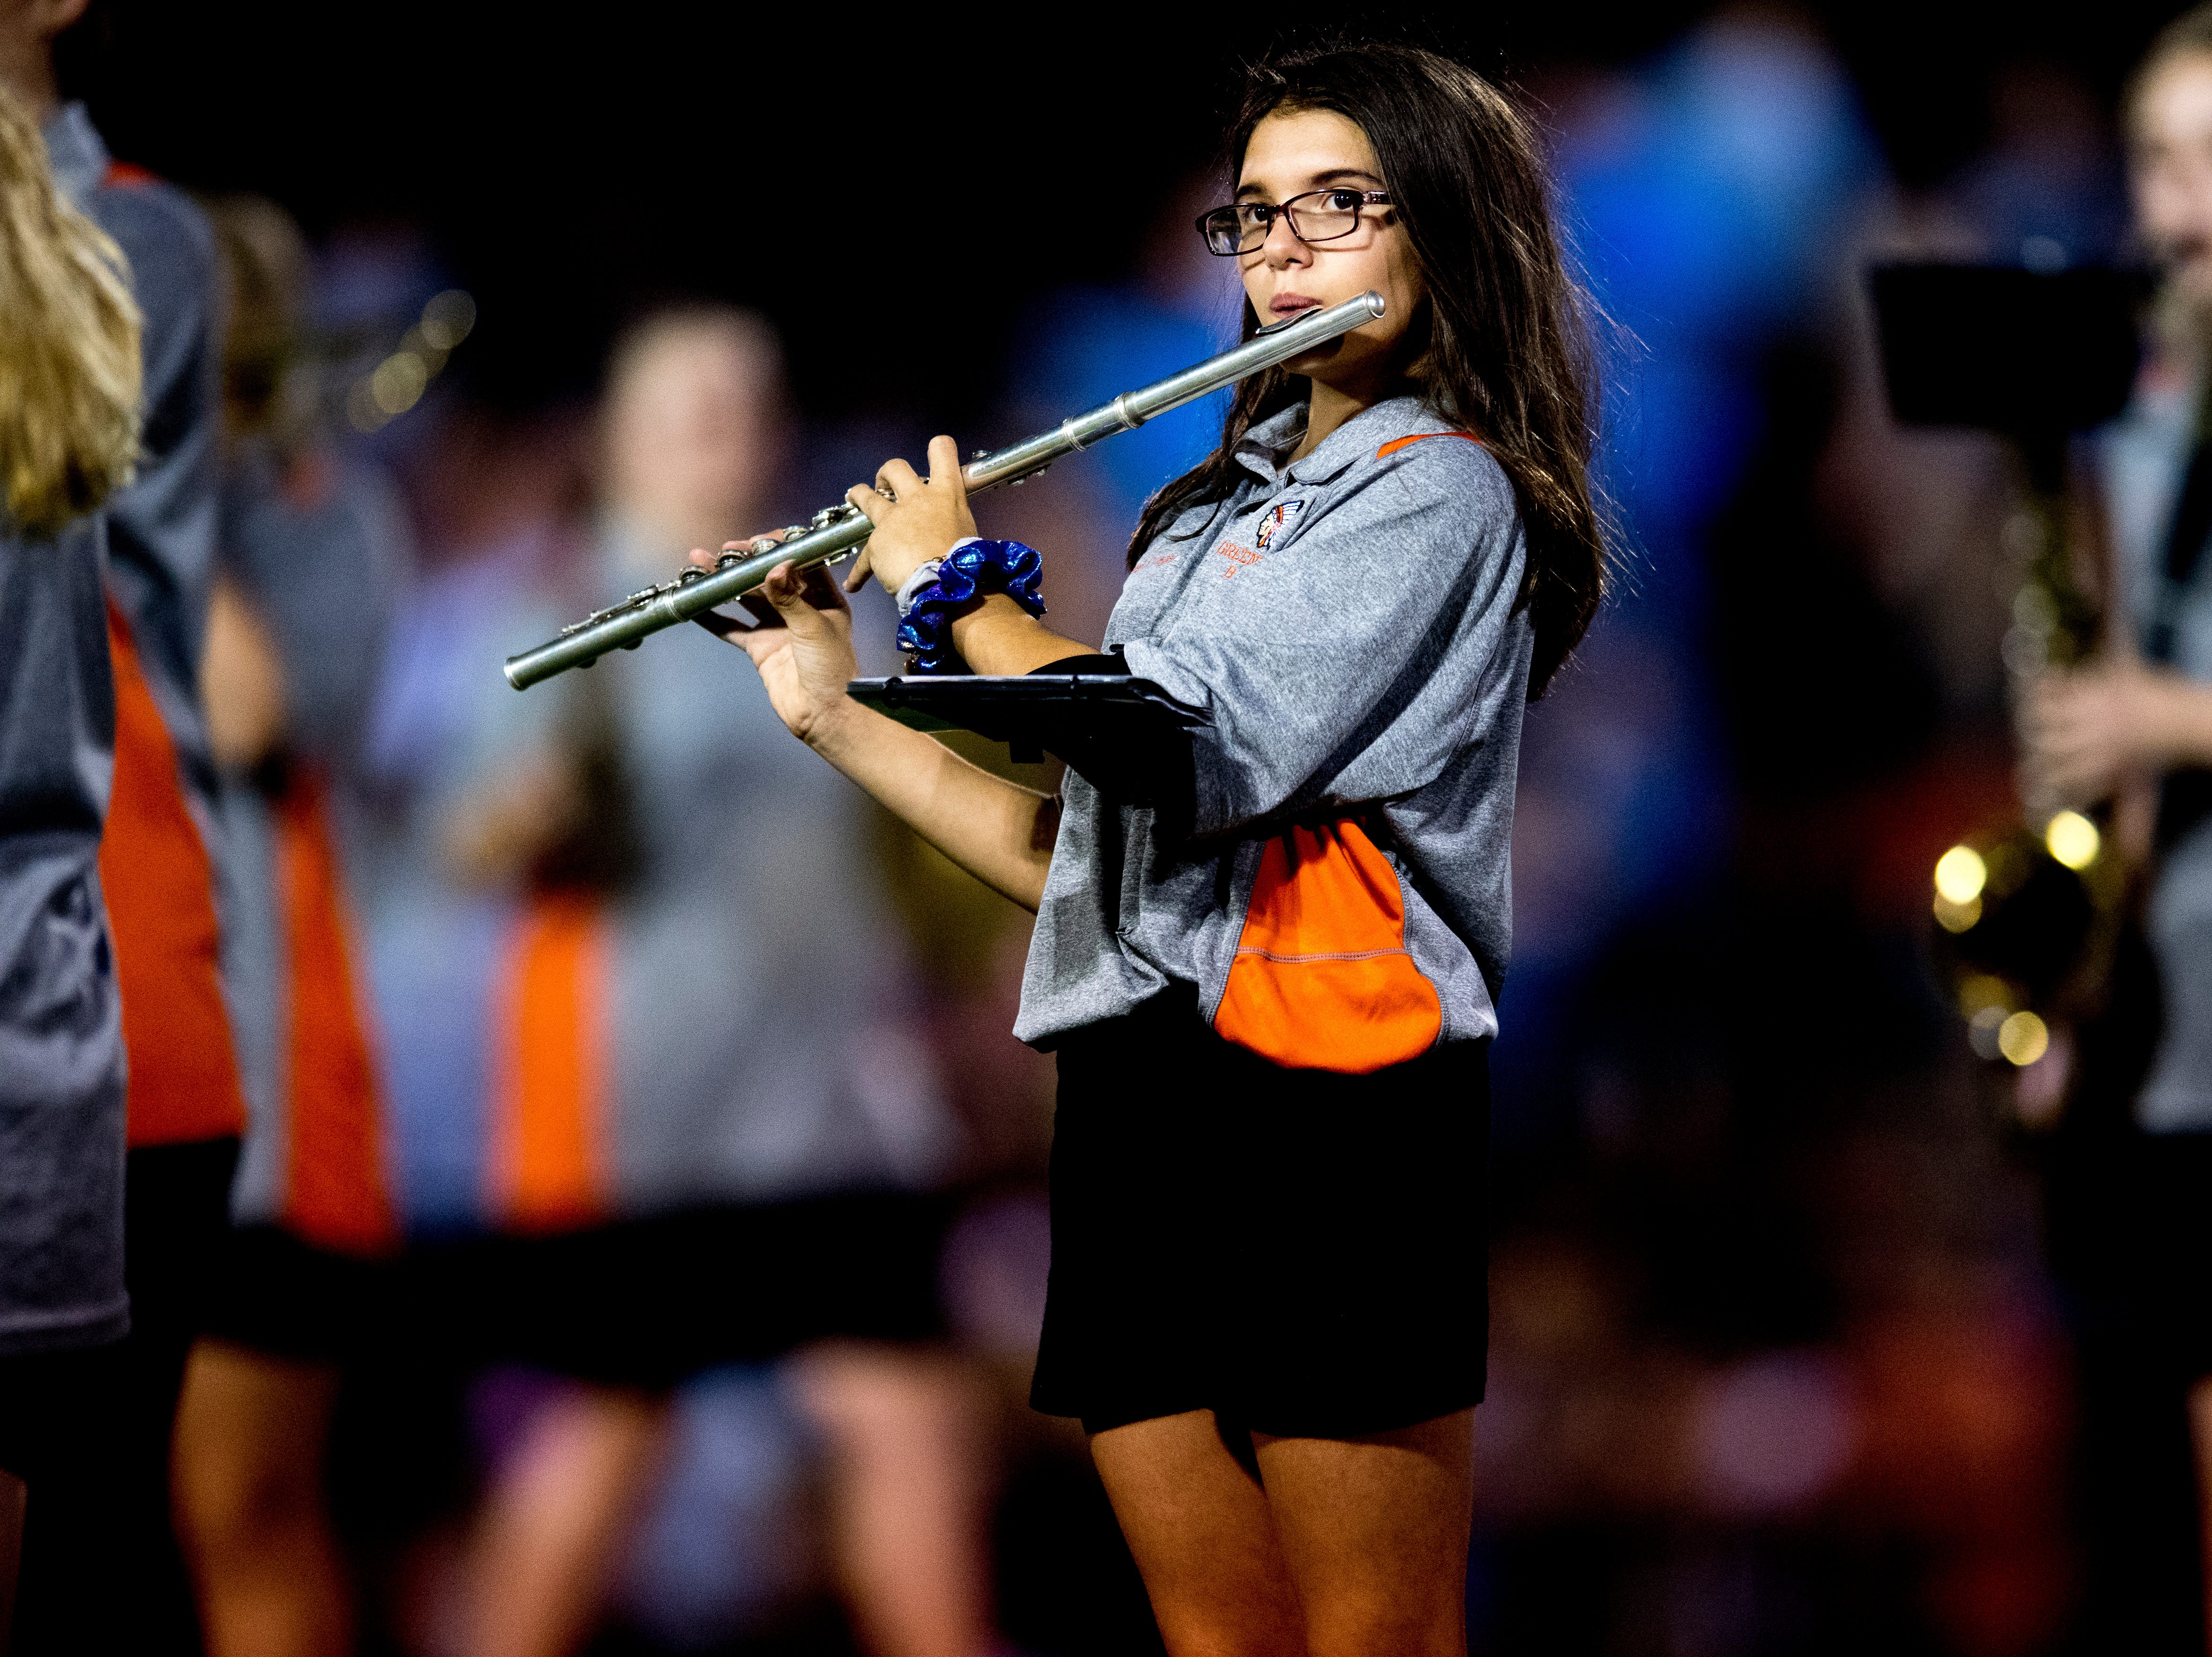 The Greenback marching band performs at halftime during a football game between Greenback and Grace Christian at Greenback High School in Greenback, Tennessee on Thursday, September 20, 2018.